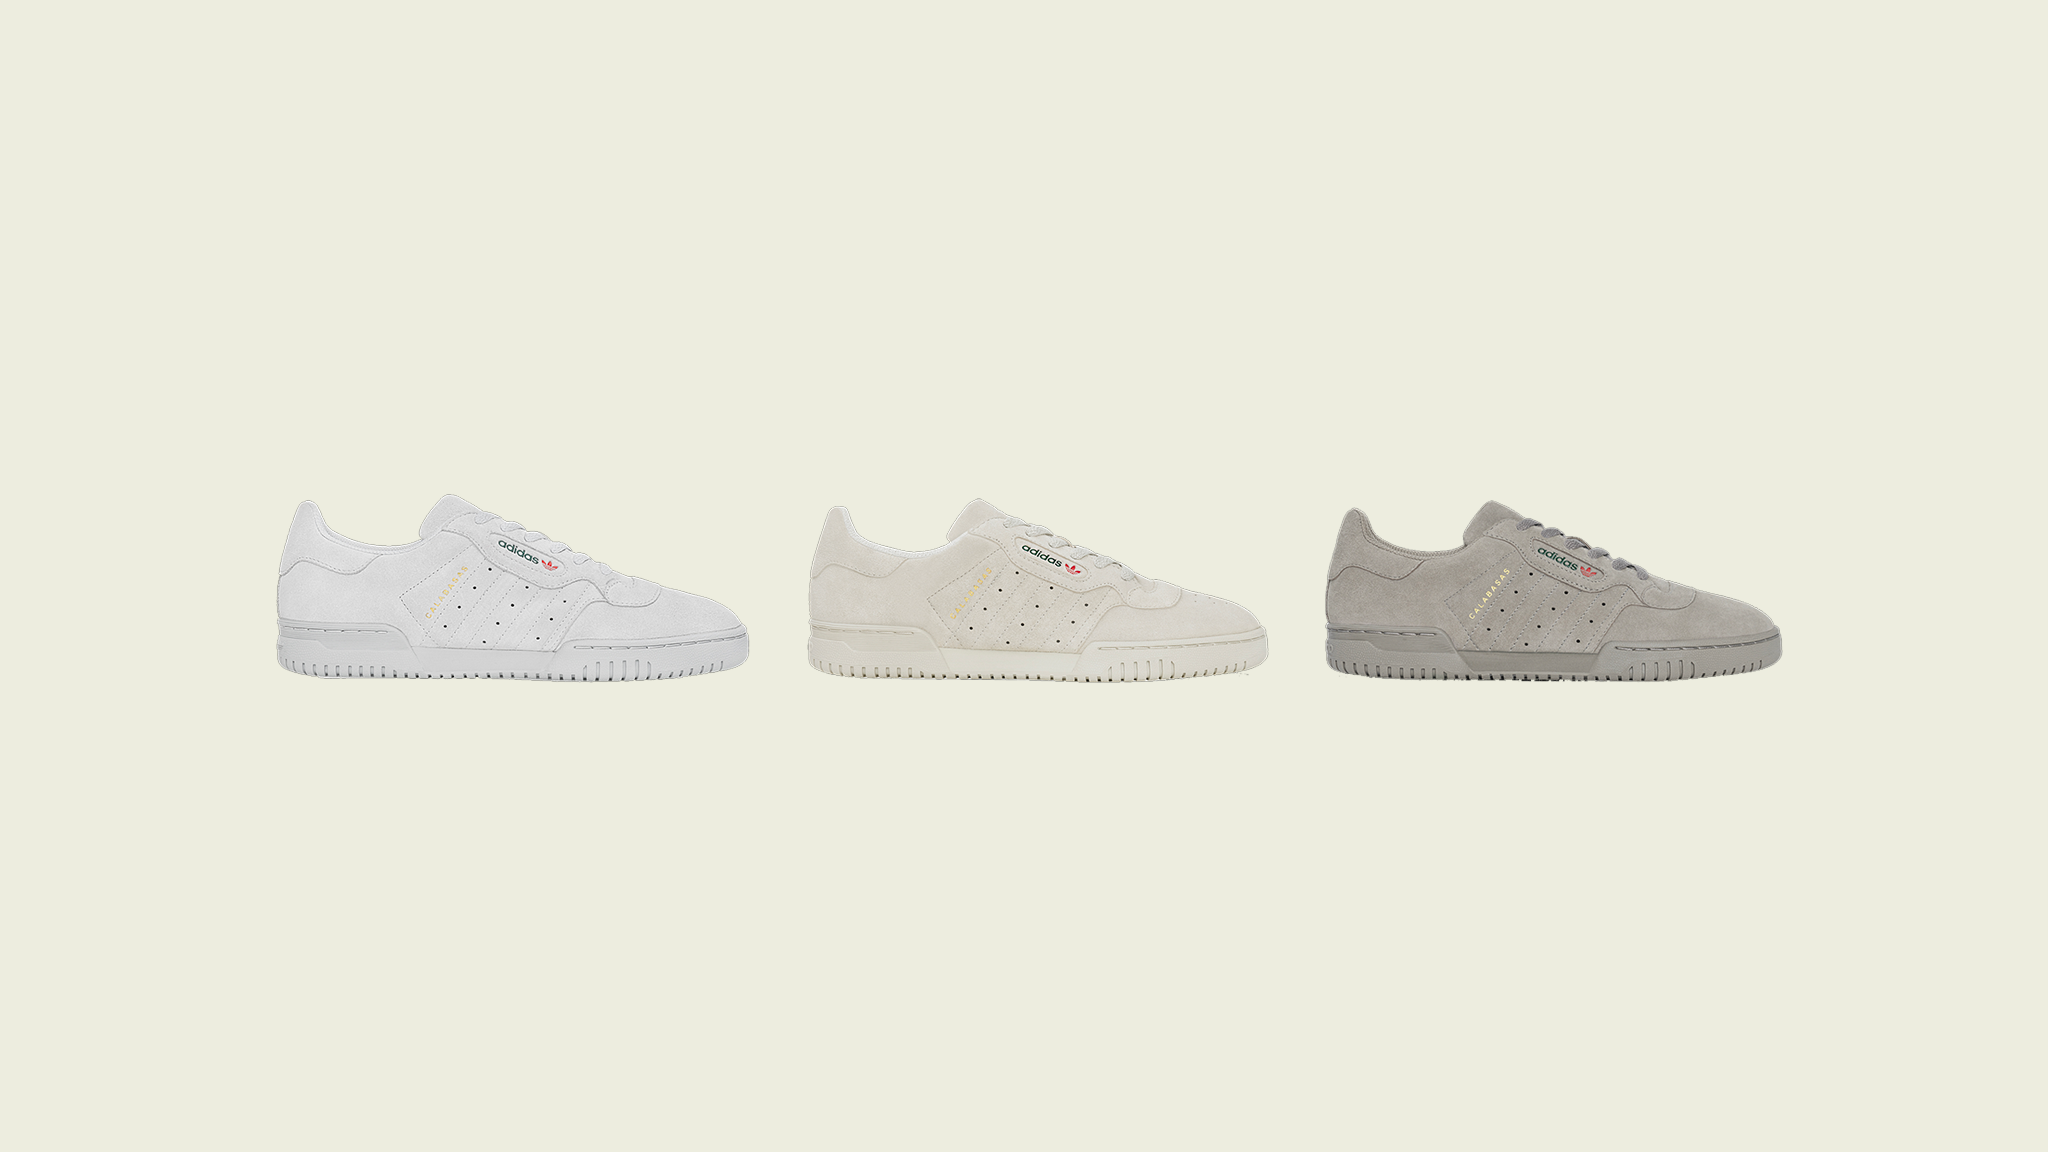 YEEZY POWERPHASE Returns